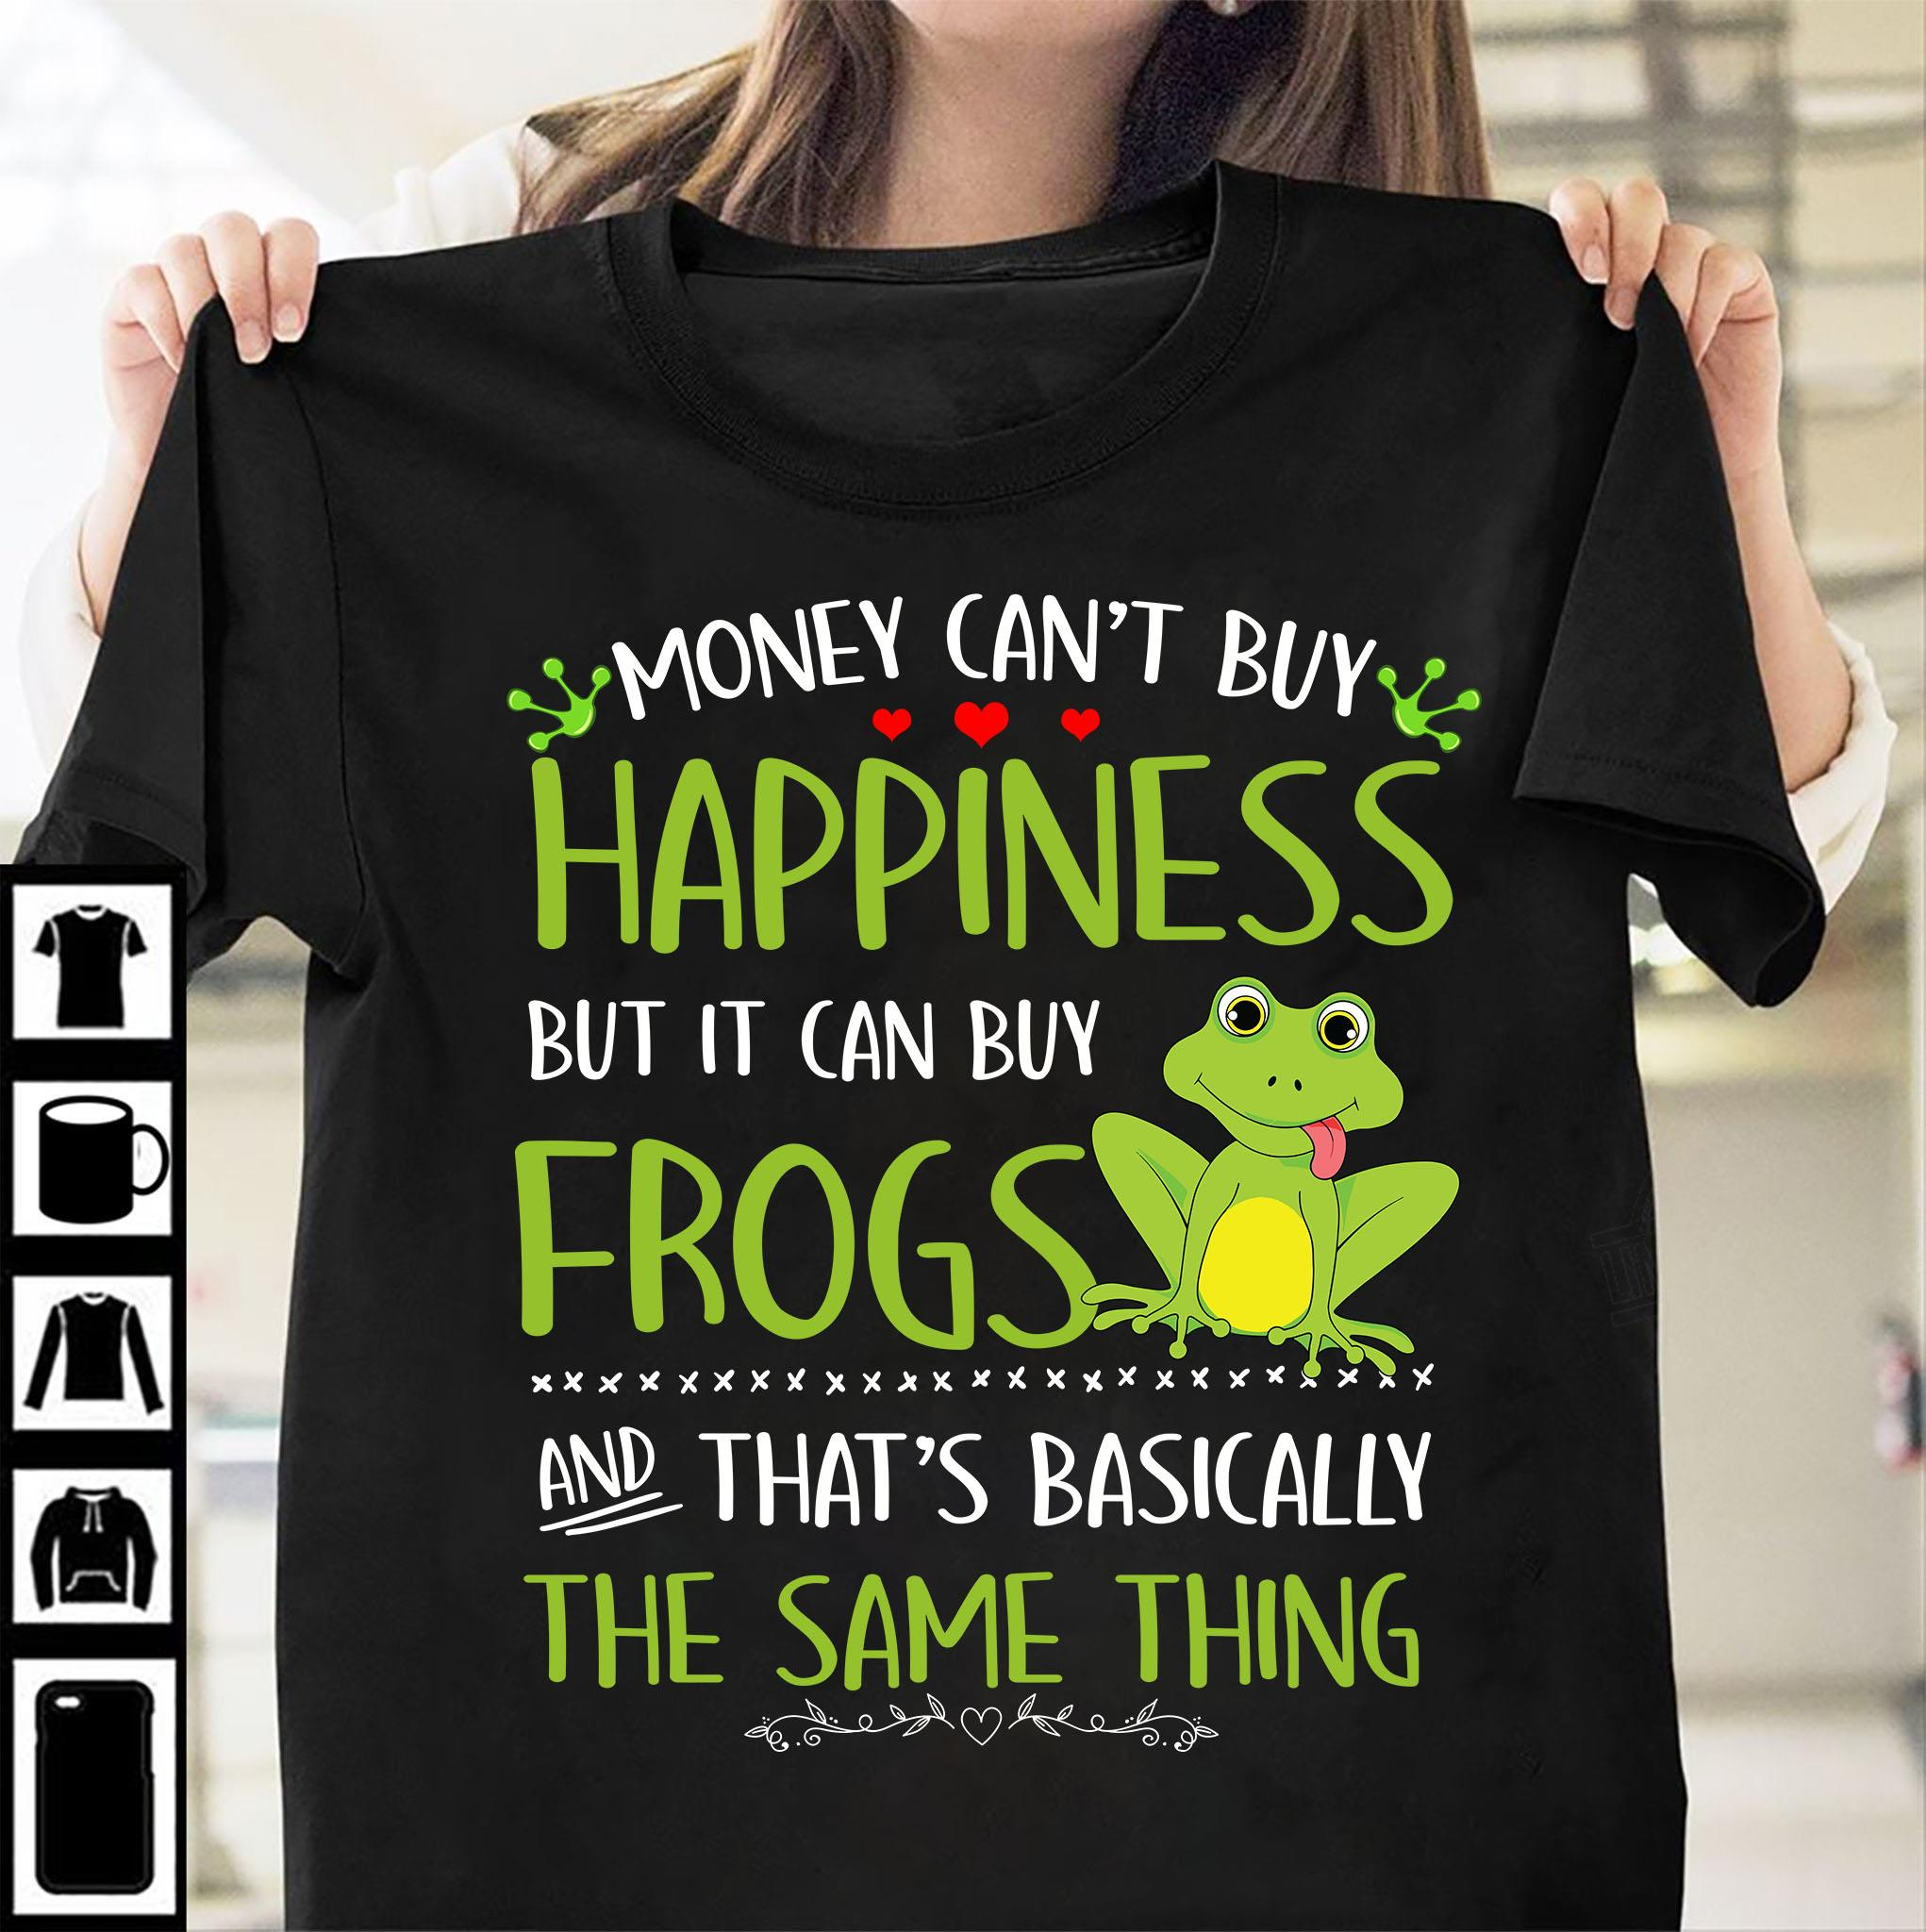 Money Can't Buy Happiness But It Can Buy Frogs Shirt